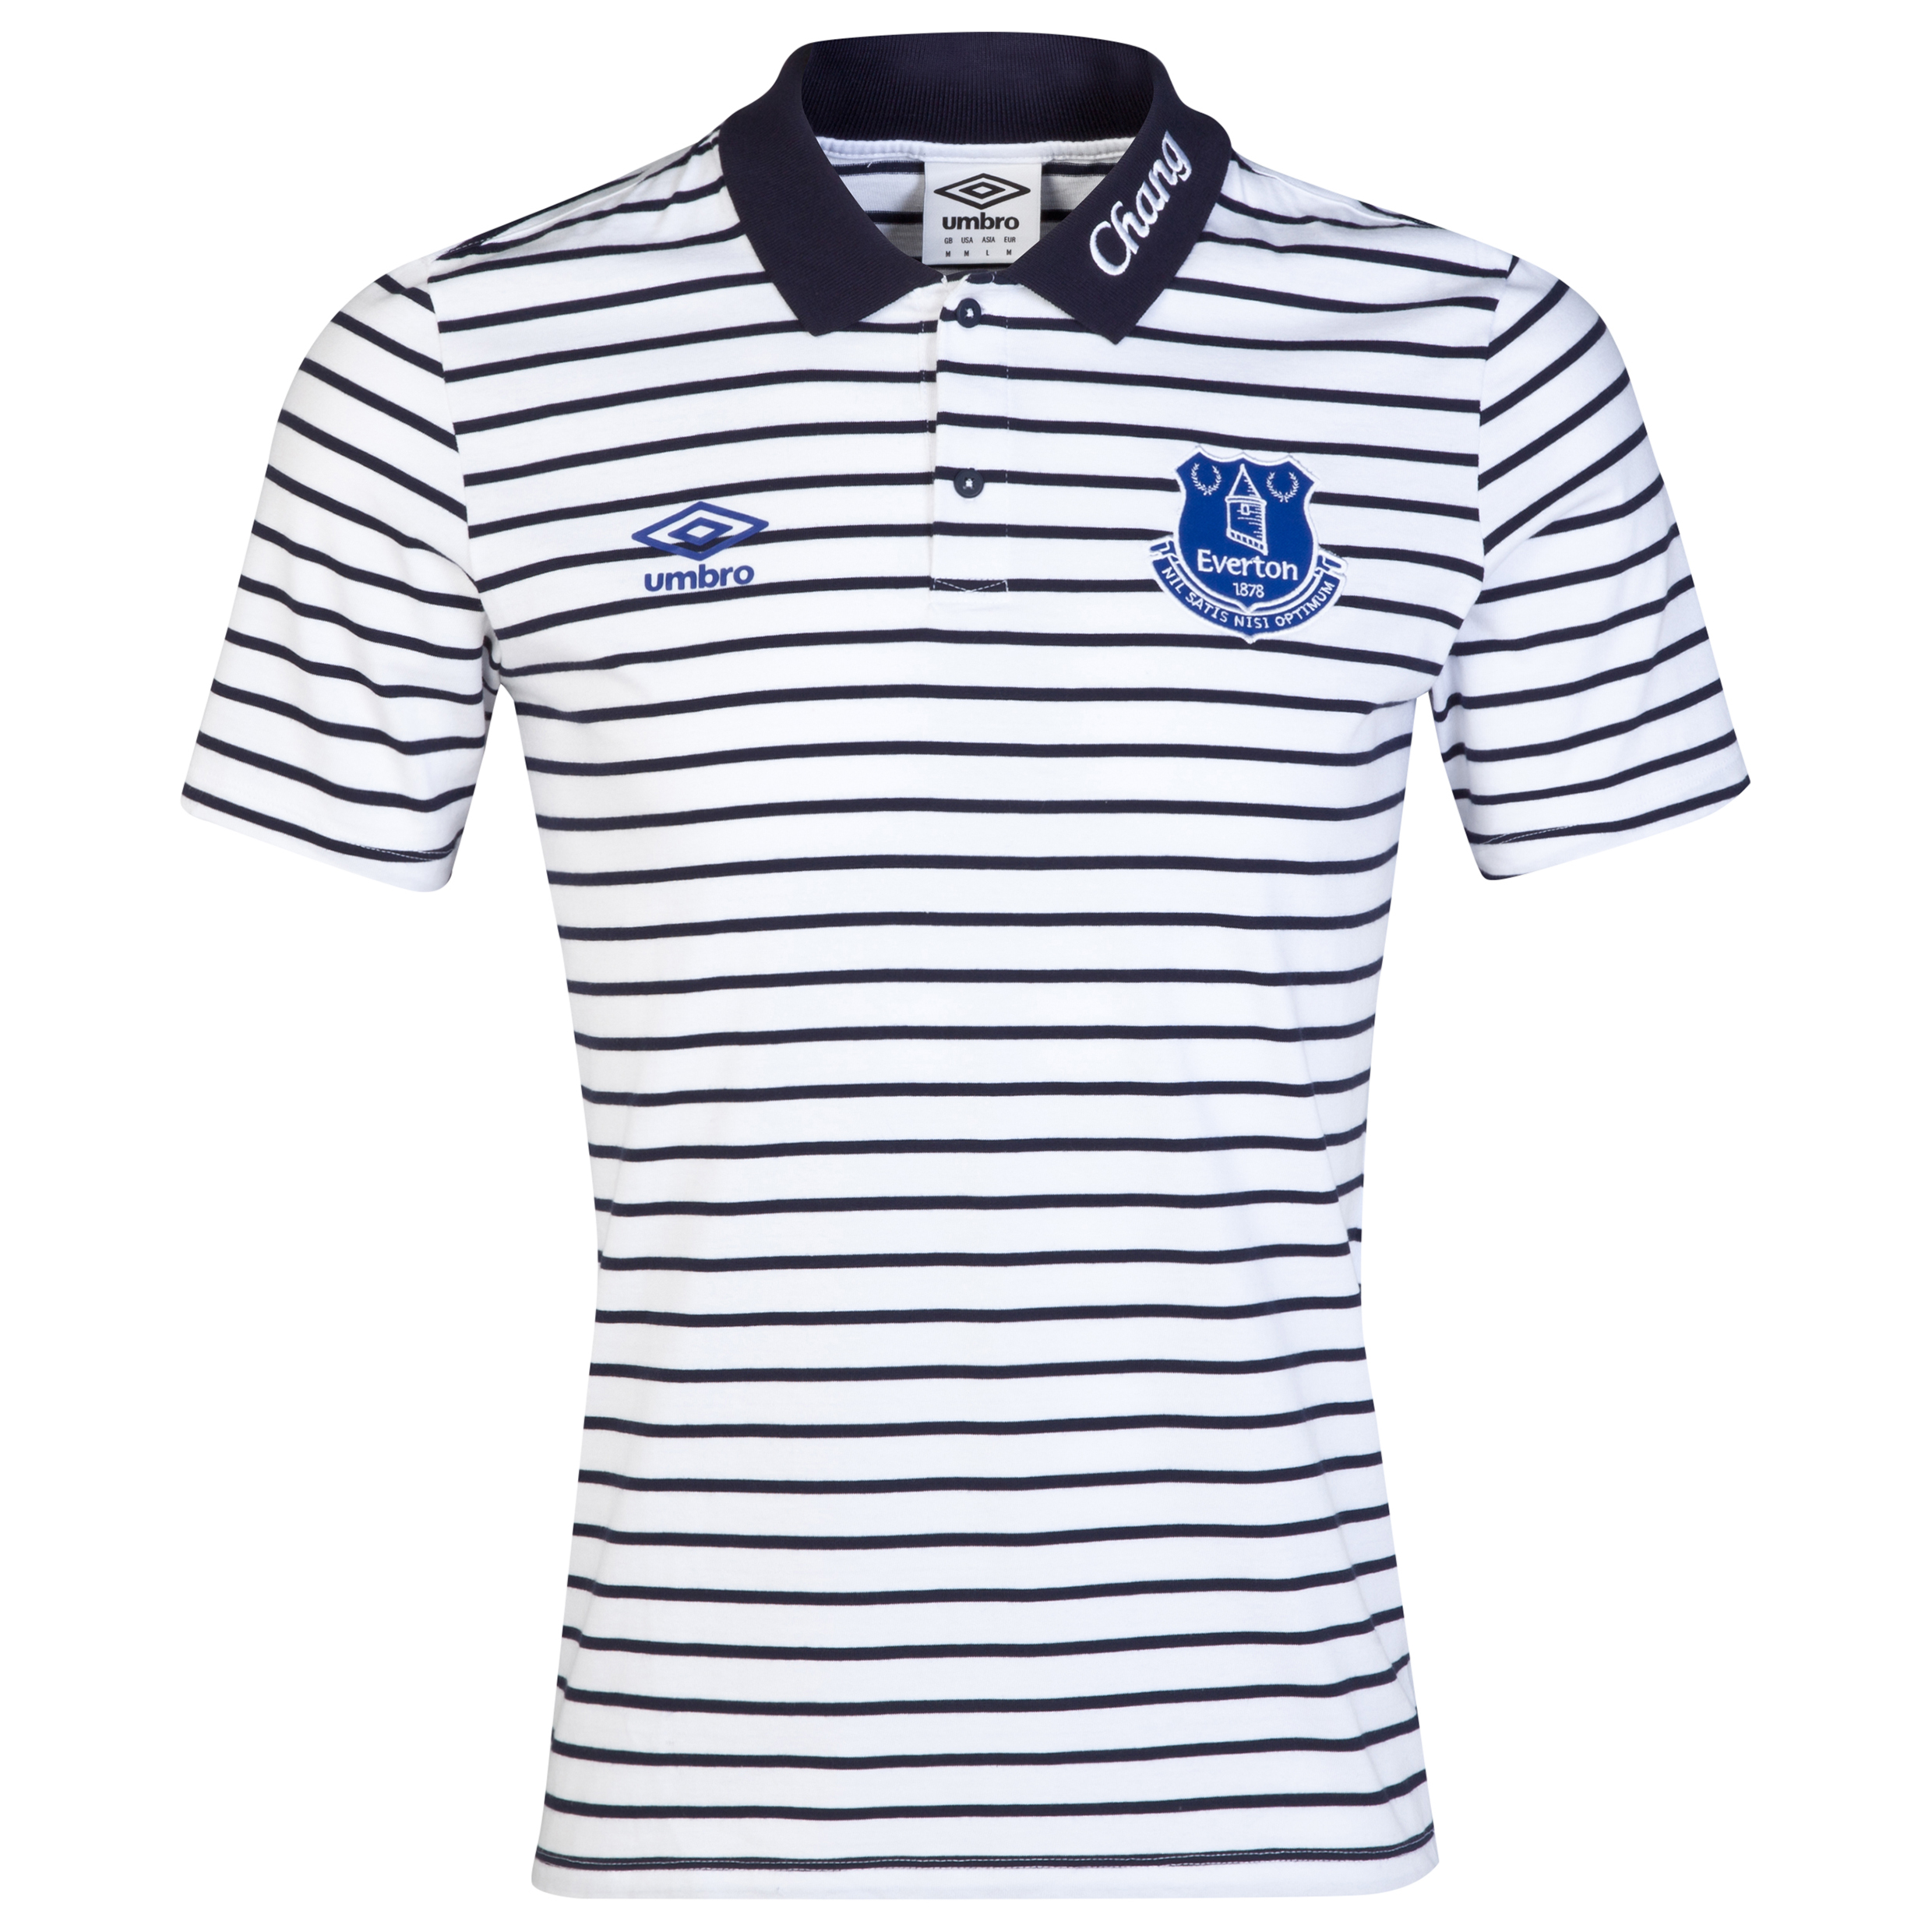 Everton Media Yarn Dye Polo-White/Dark Navy